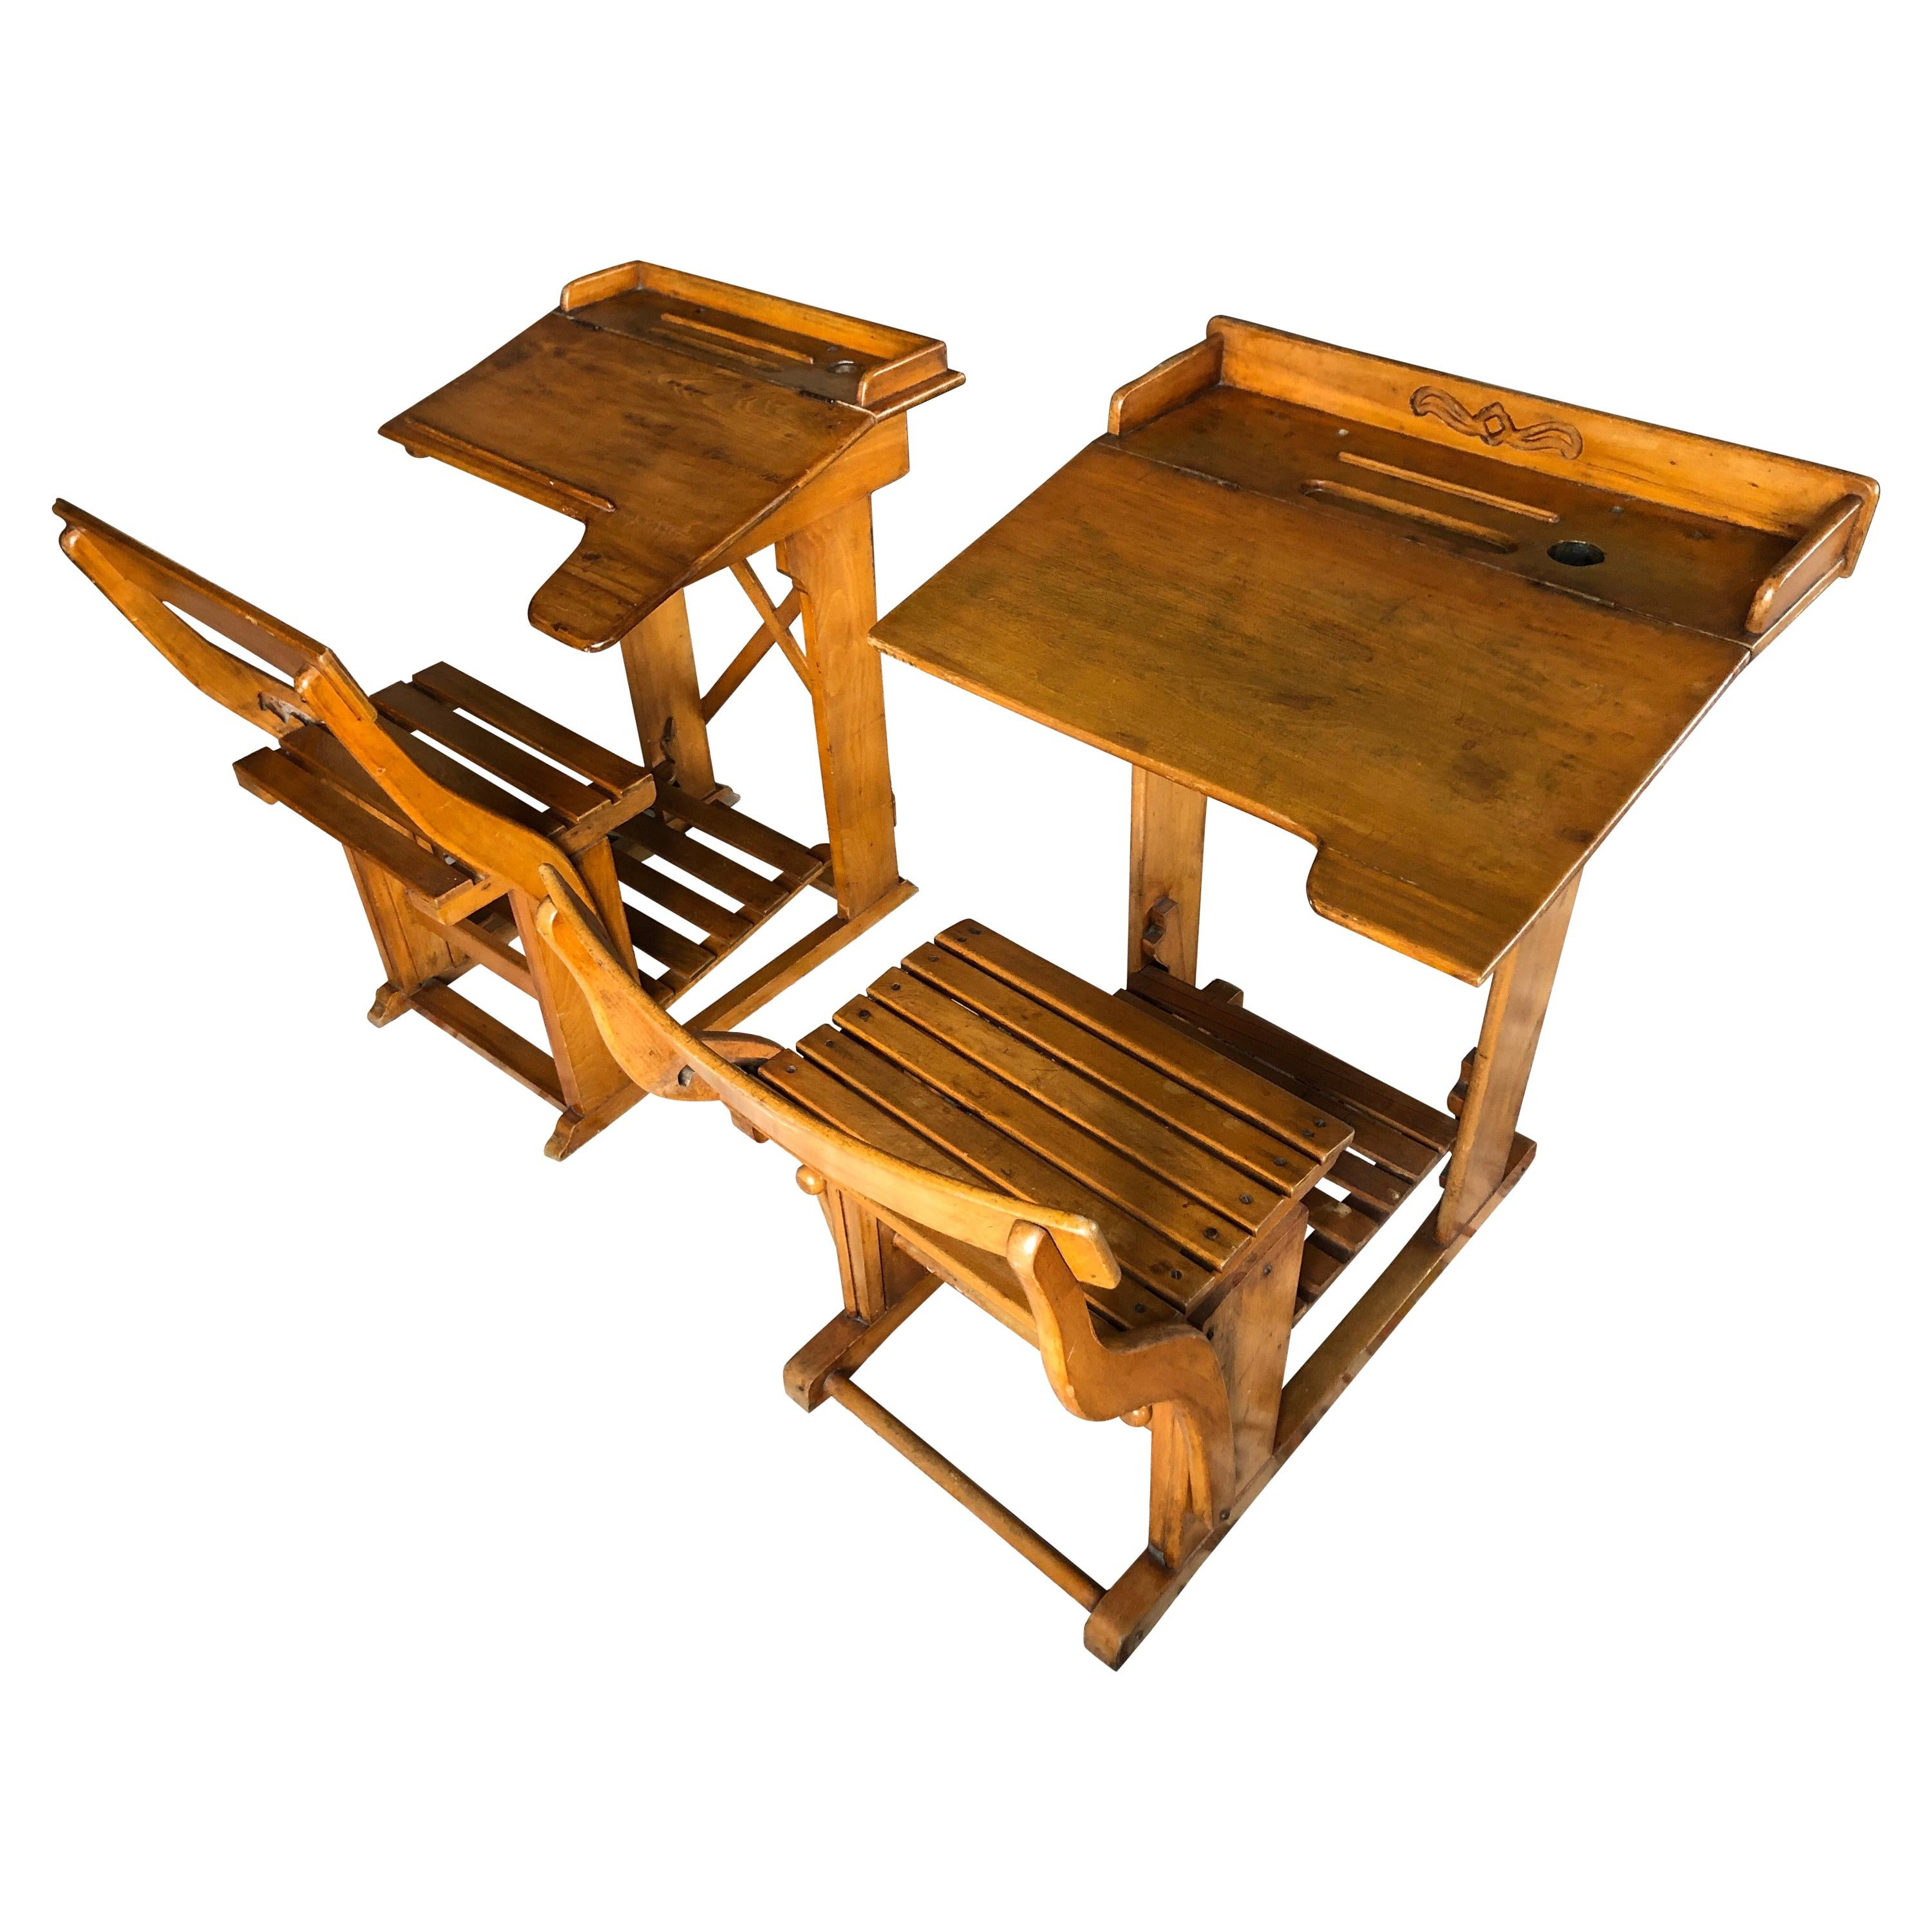 Antique French Wooden Children's Writing Tables Desks and Adjustable Seats